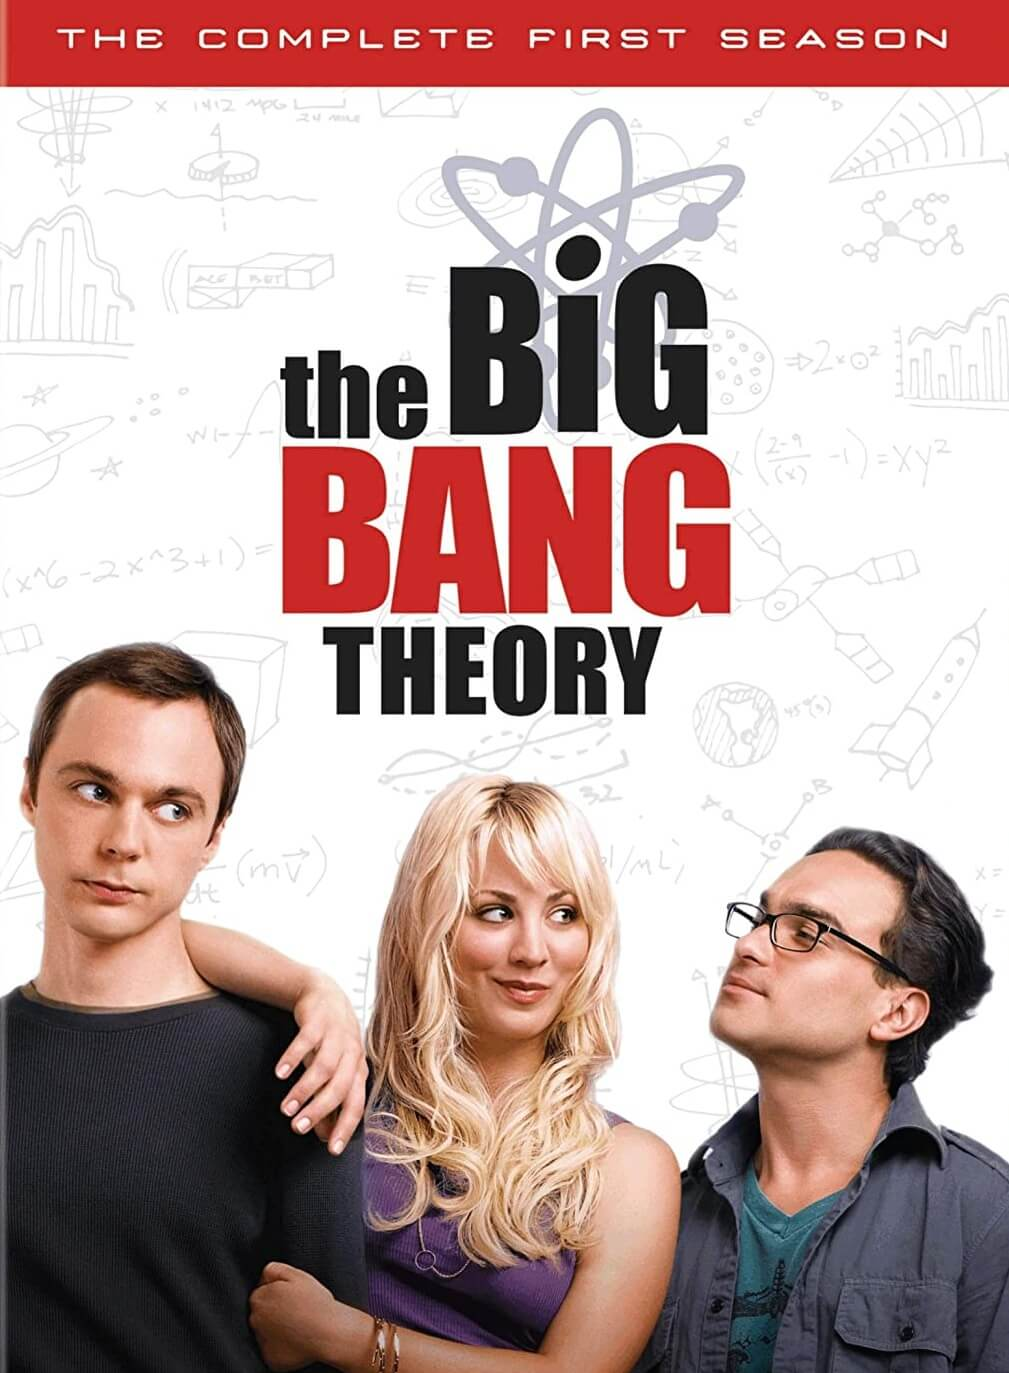 The Big Bang Theory S01 E02